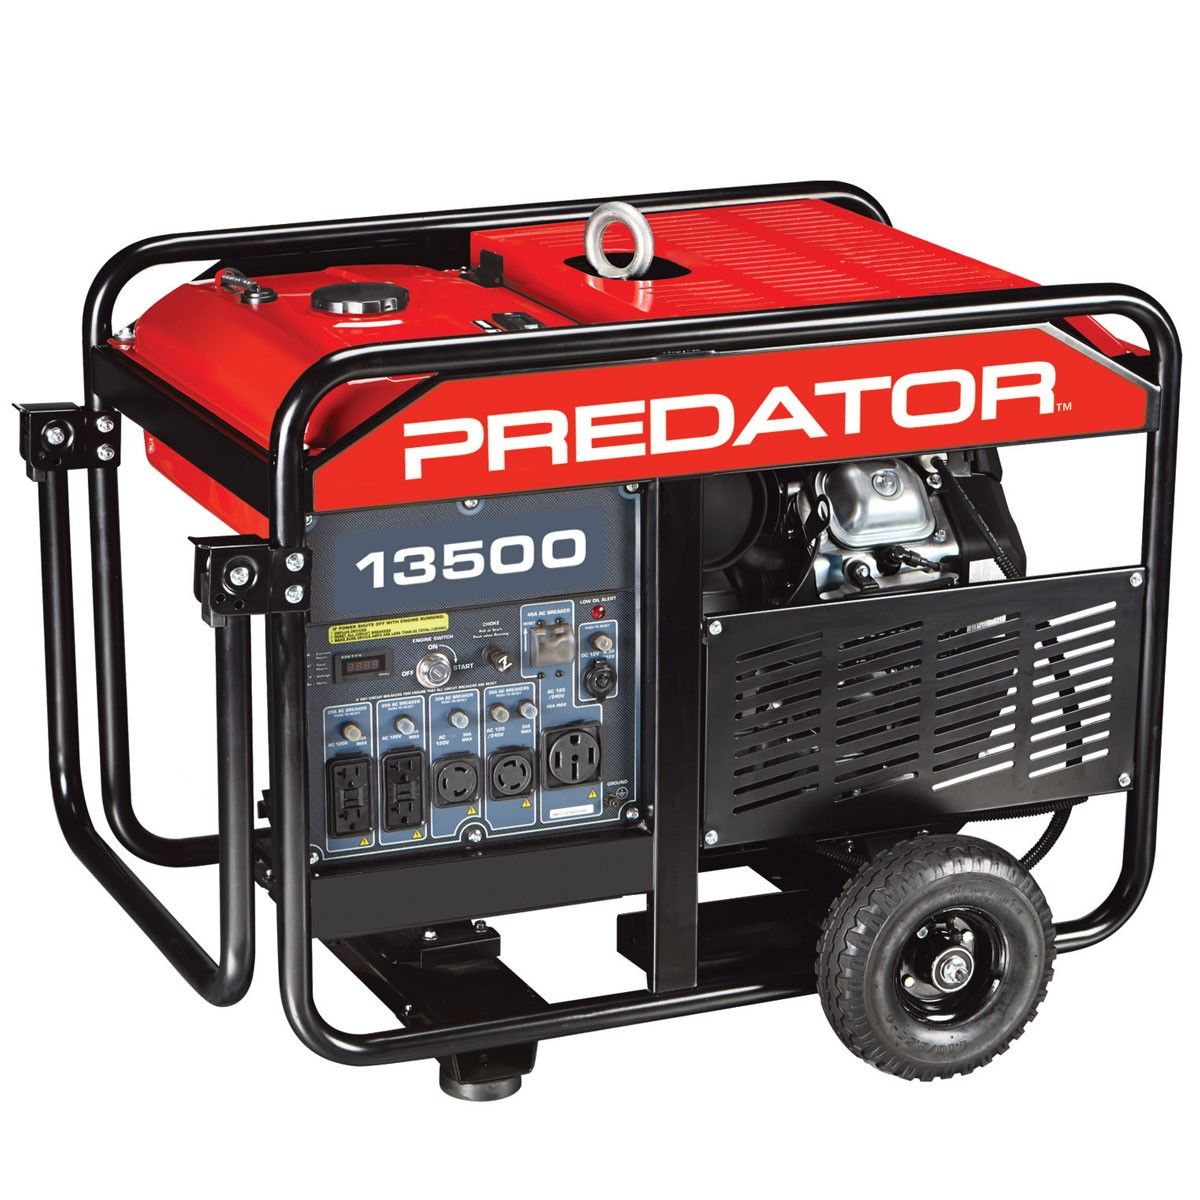 13500 Peak/11000 Running Watts, 22 HP (670cc) Gas Generator